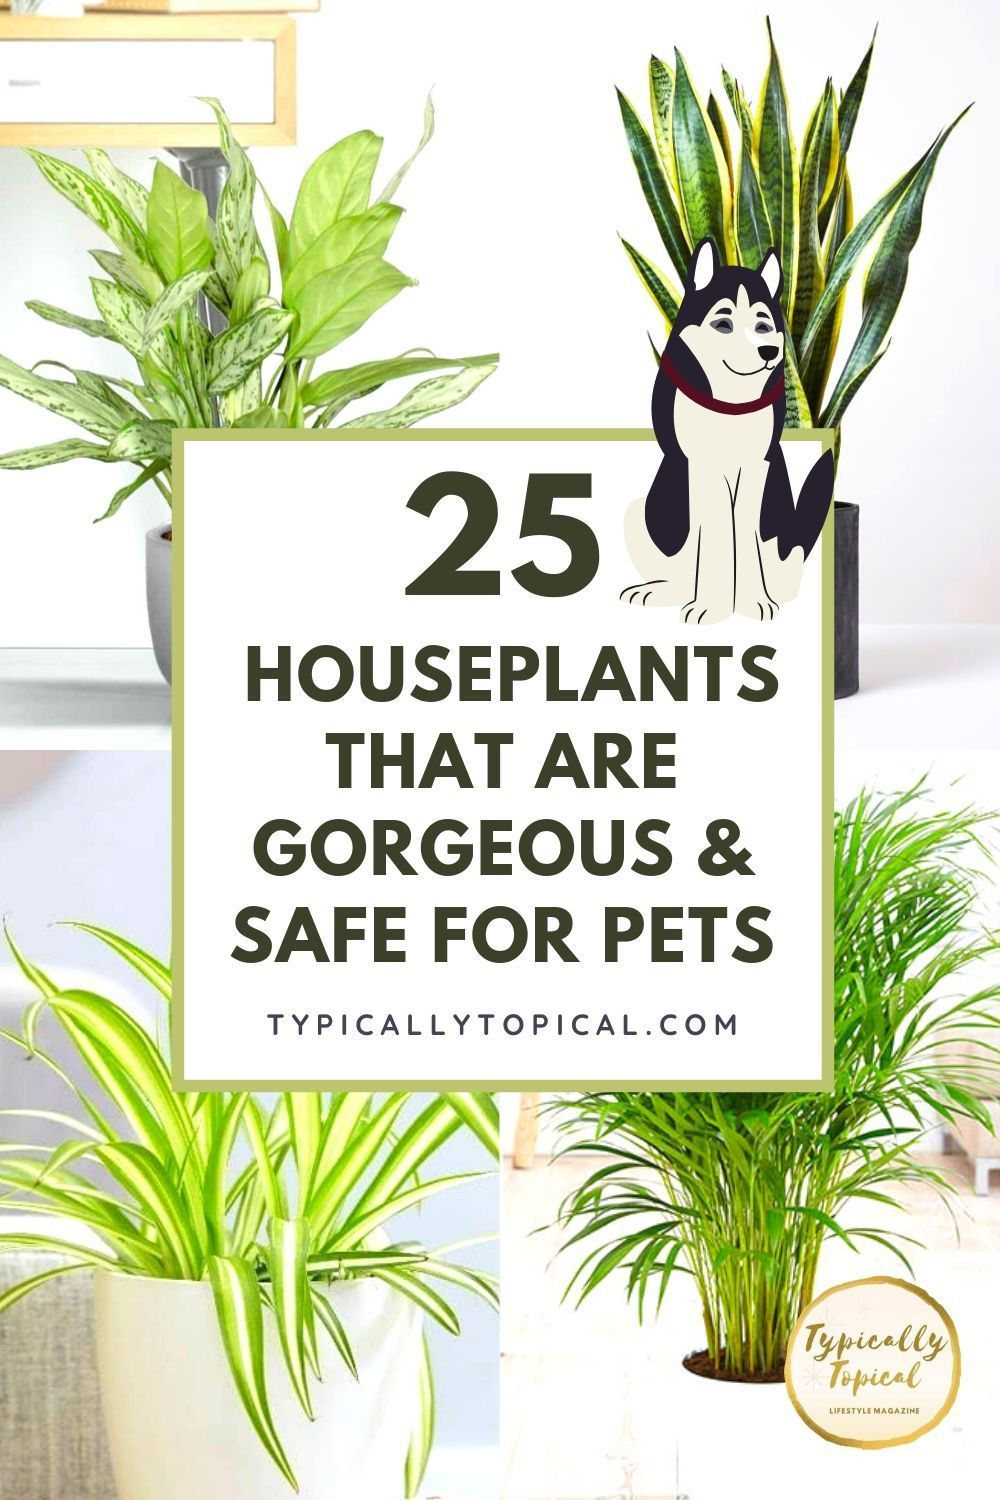 25 Gorgeous Houseplants That Are Safe For Cats And Dogs Aspca Approved Typically Topical In 2020 Houseplants Safe For Cats Dog Safe Plants Pet Safe